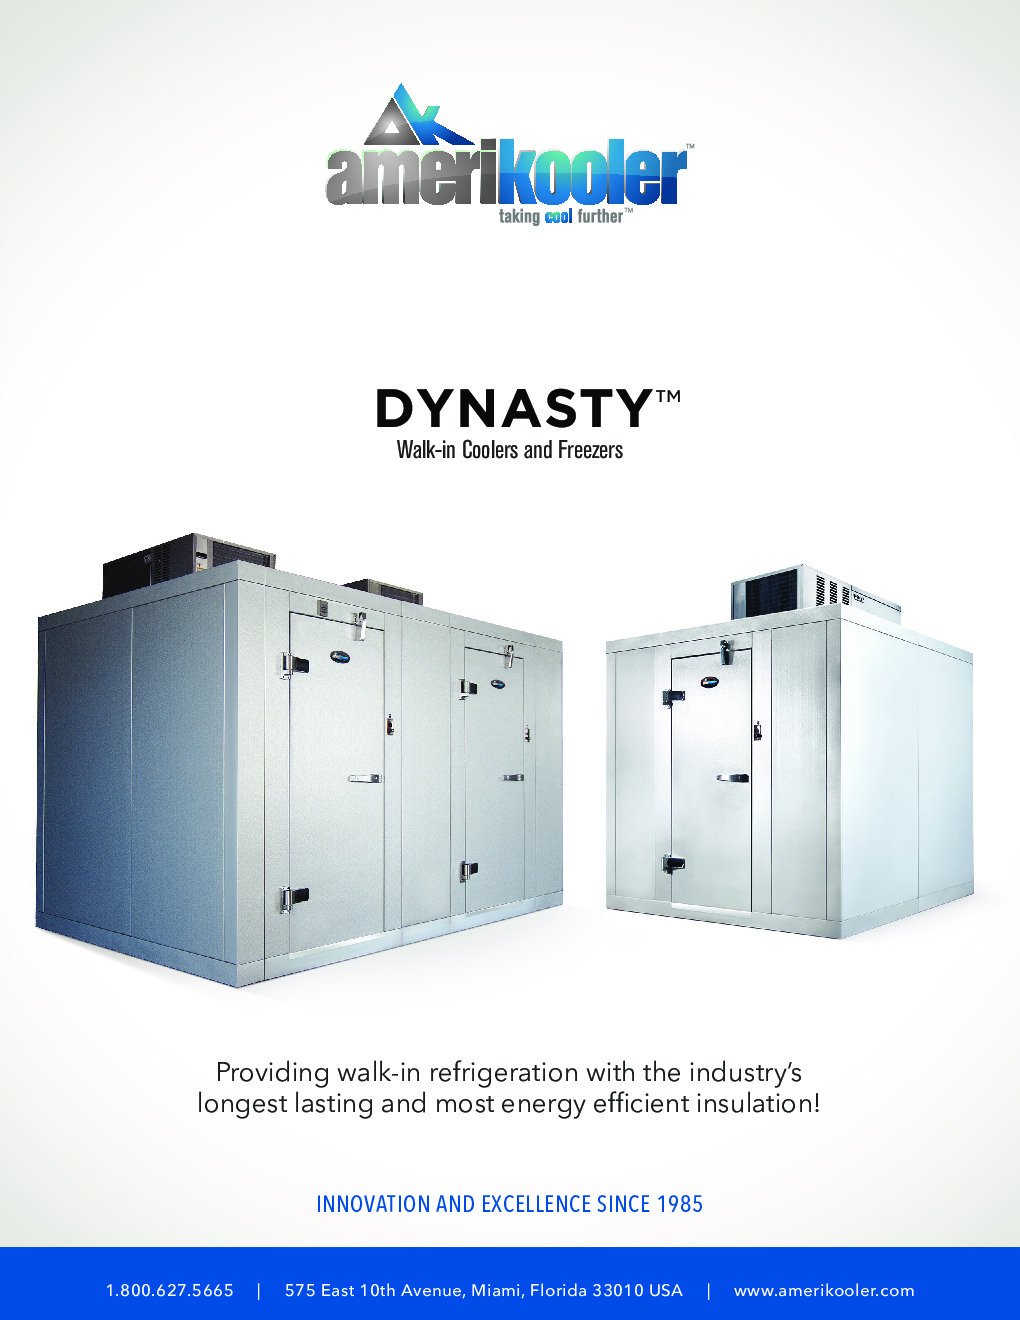 AmeriKooler DW081877N-4/14-SC 8' X 18' Walk-In Cooler, 14' L Cooler without Floor and 4' L Freezer, Self Contained